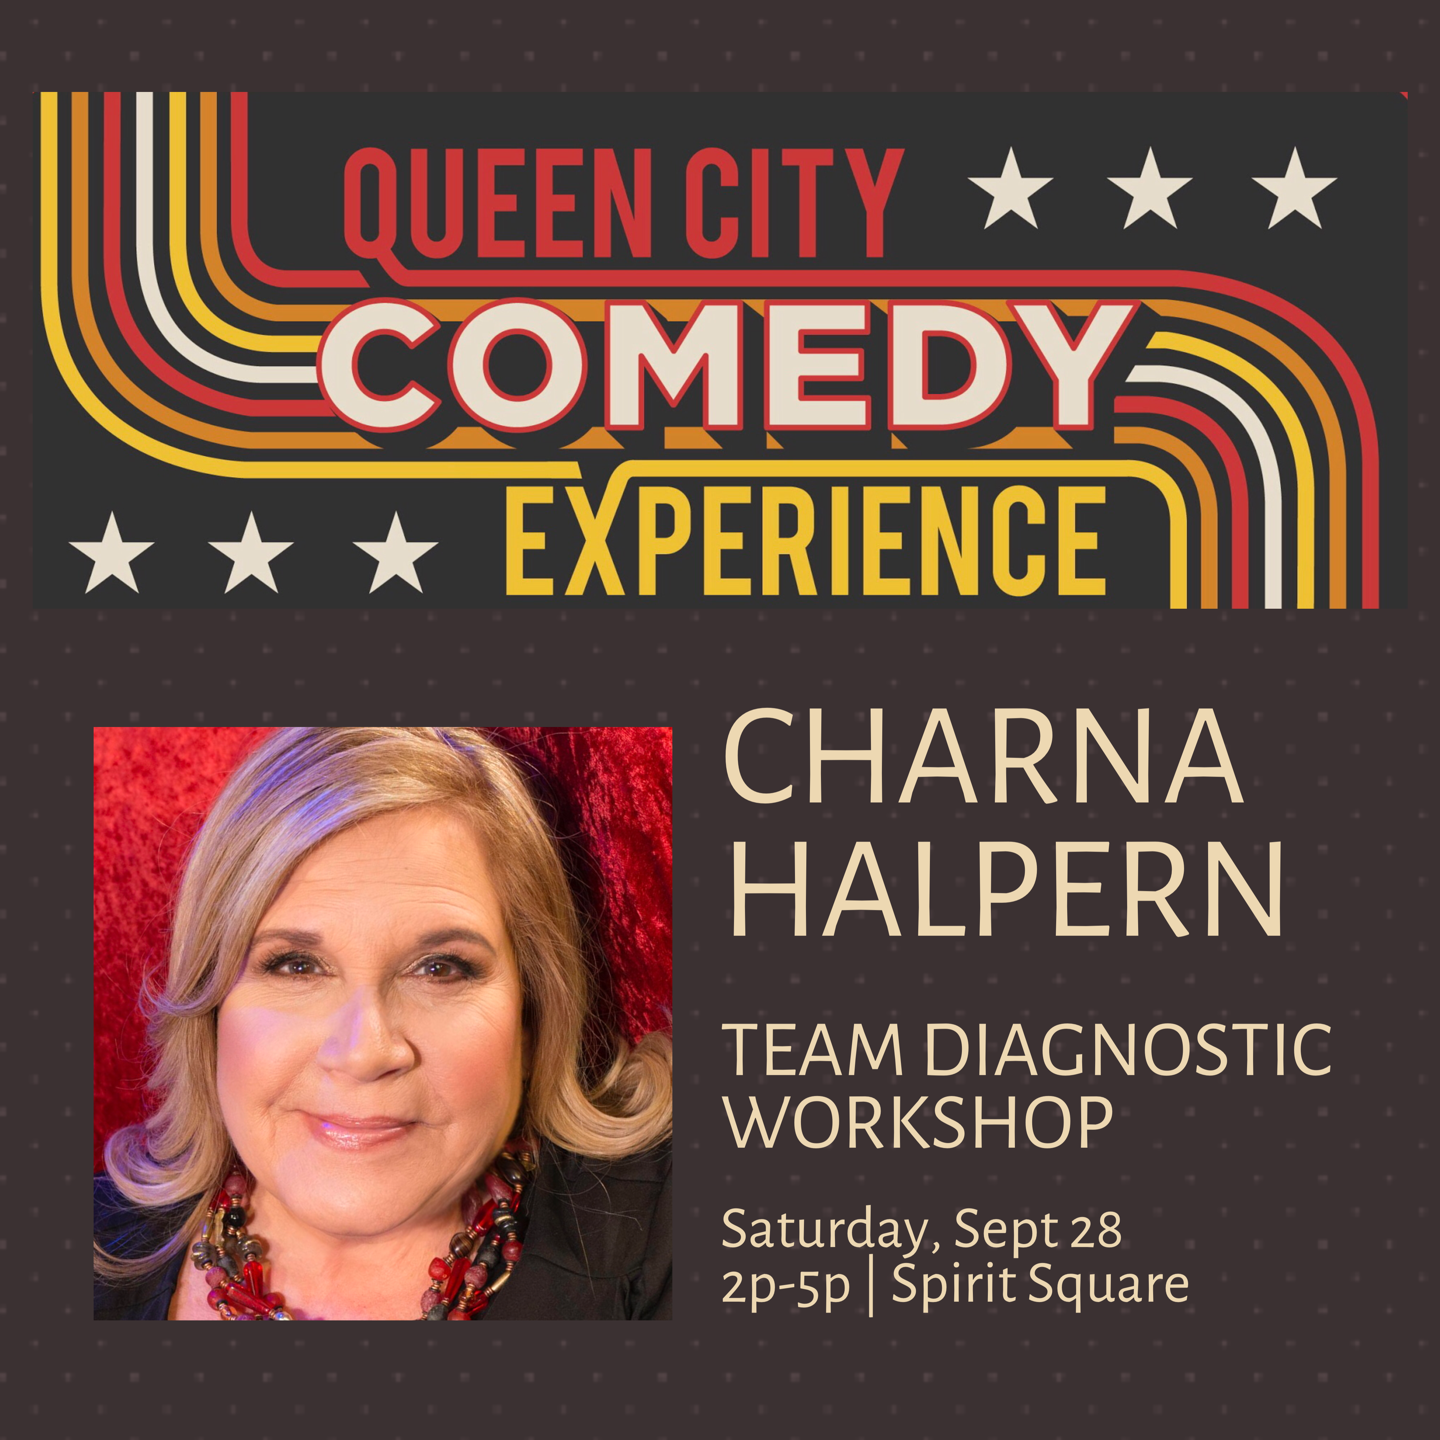 Queen City Comedy Experience Workshop: Improv Team Diagnostics with Charna Halpern